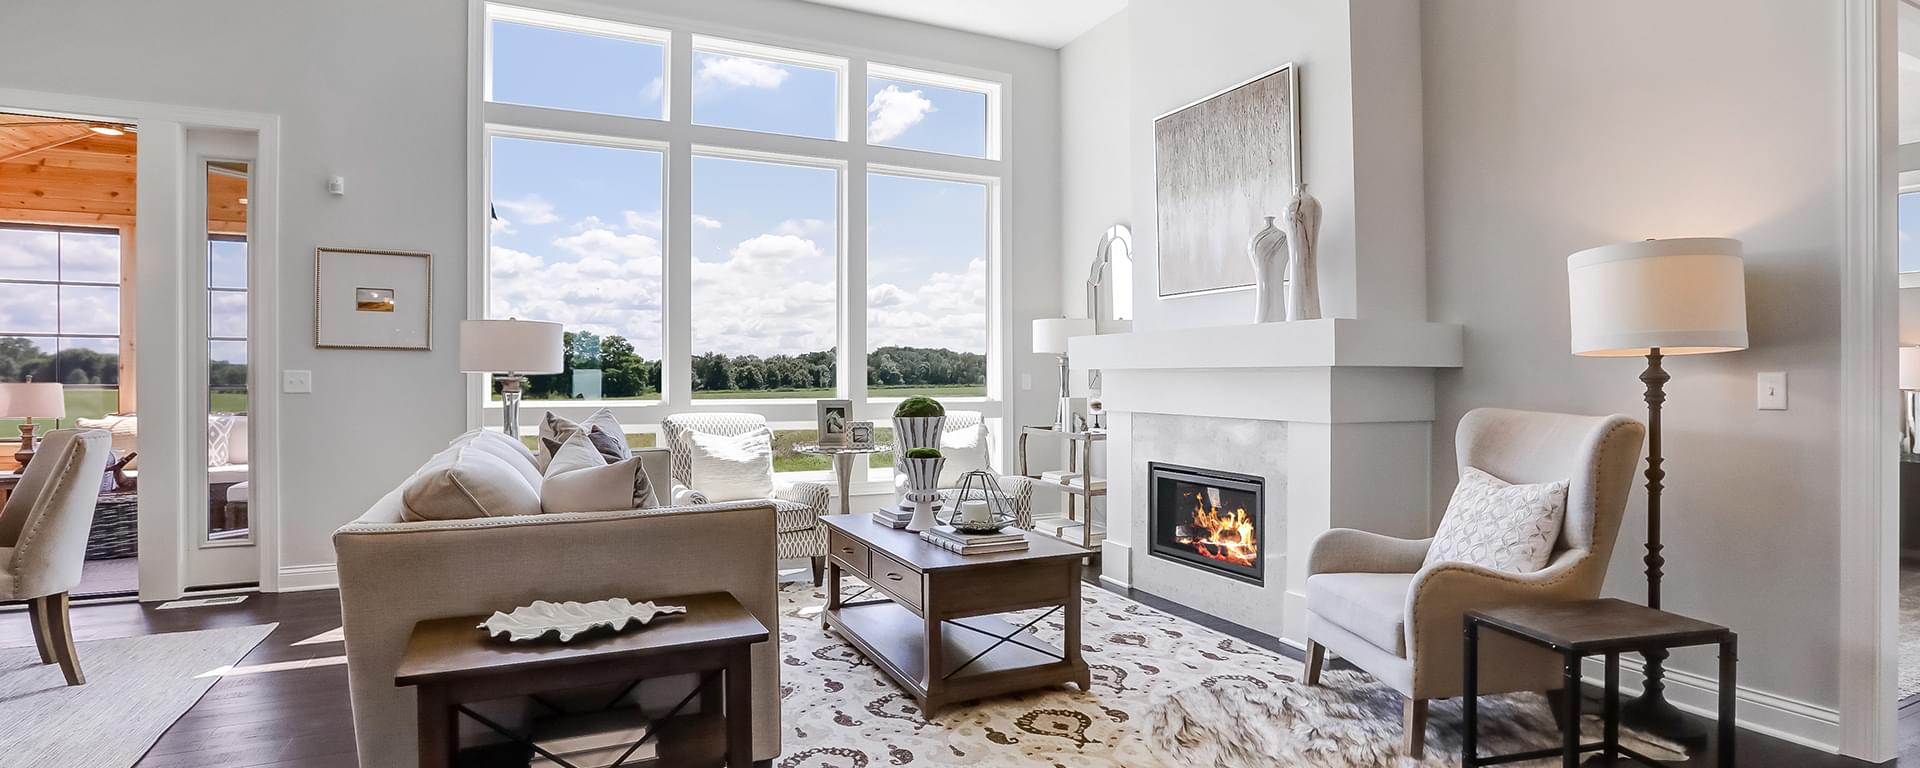 Creative Homes in Minnesota and Western Wisconsin